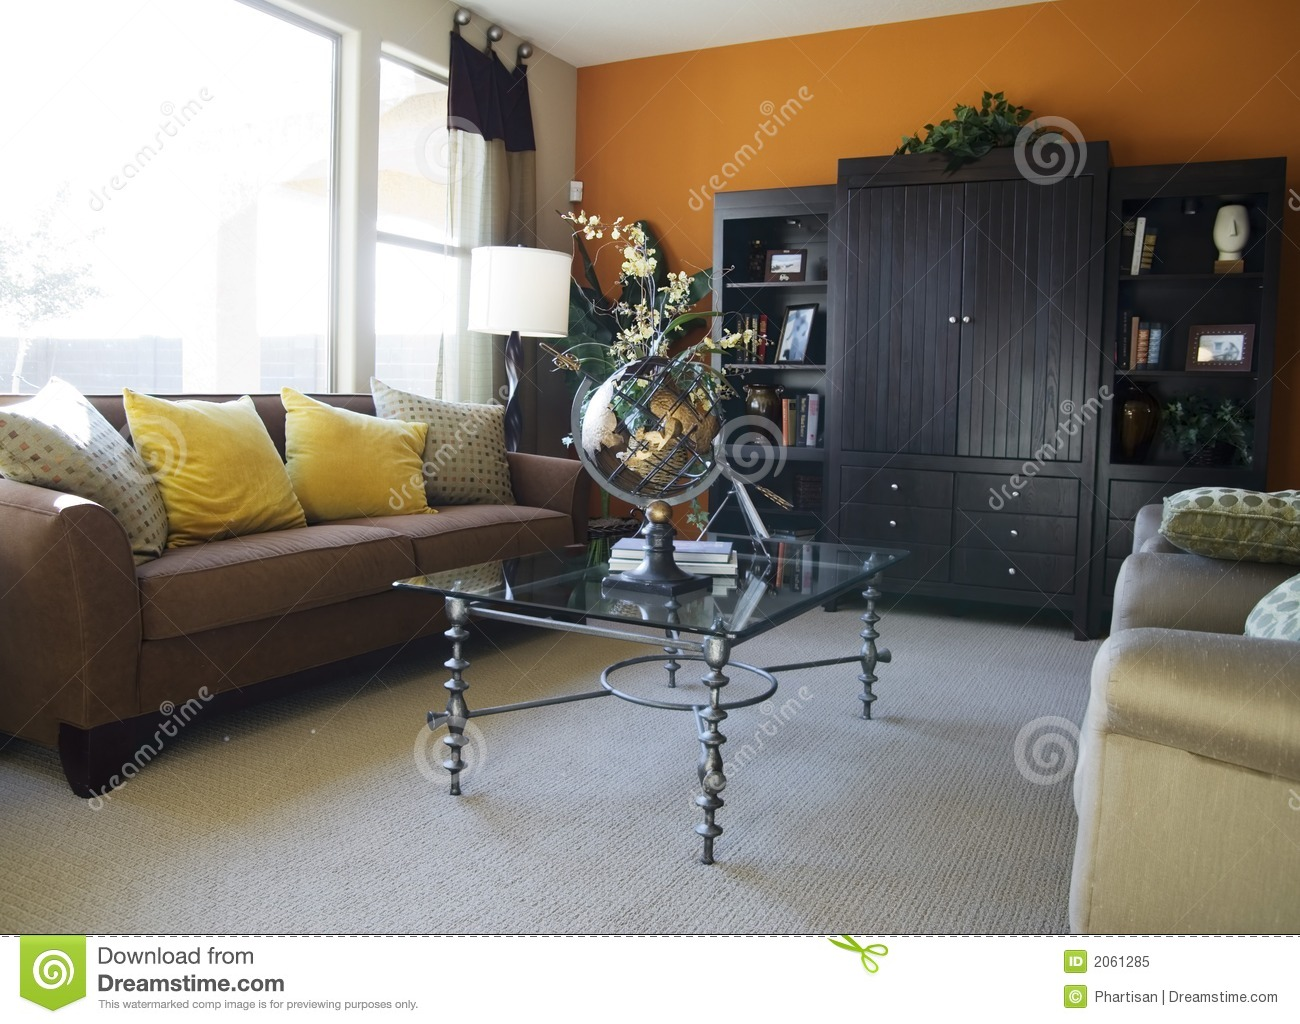 Model Home Interior Design Royalty Free Stock Photo - Image: 2061285